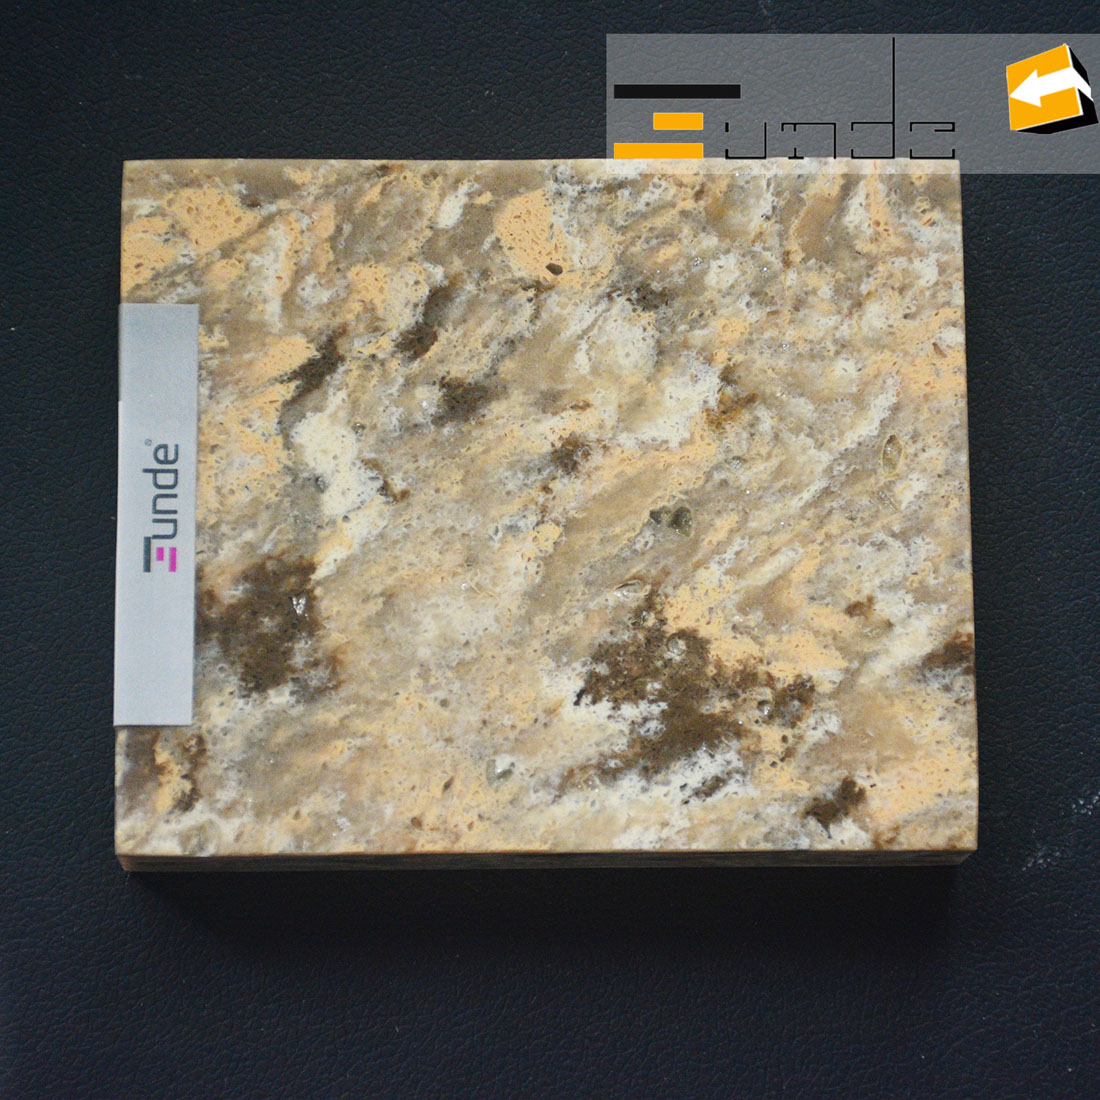 calacatta yellow quartz stone sample jd413